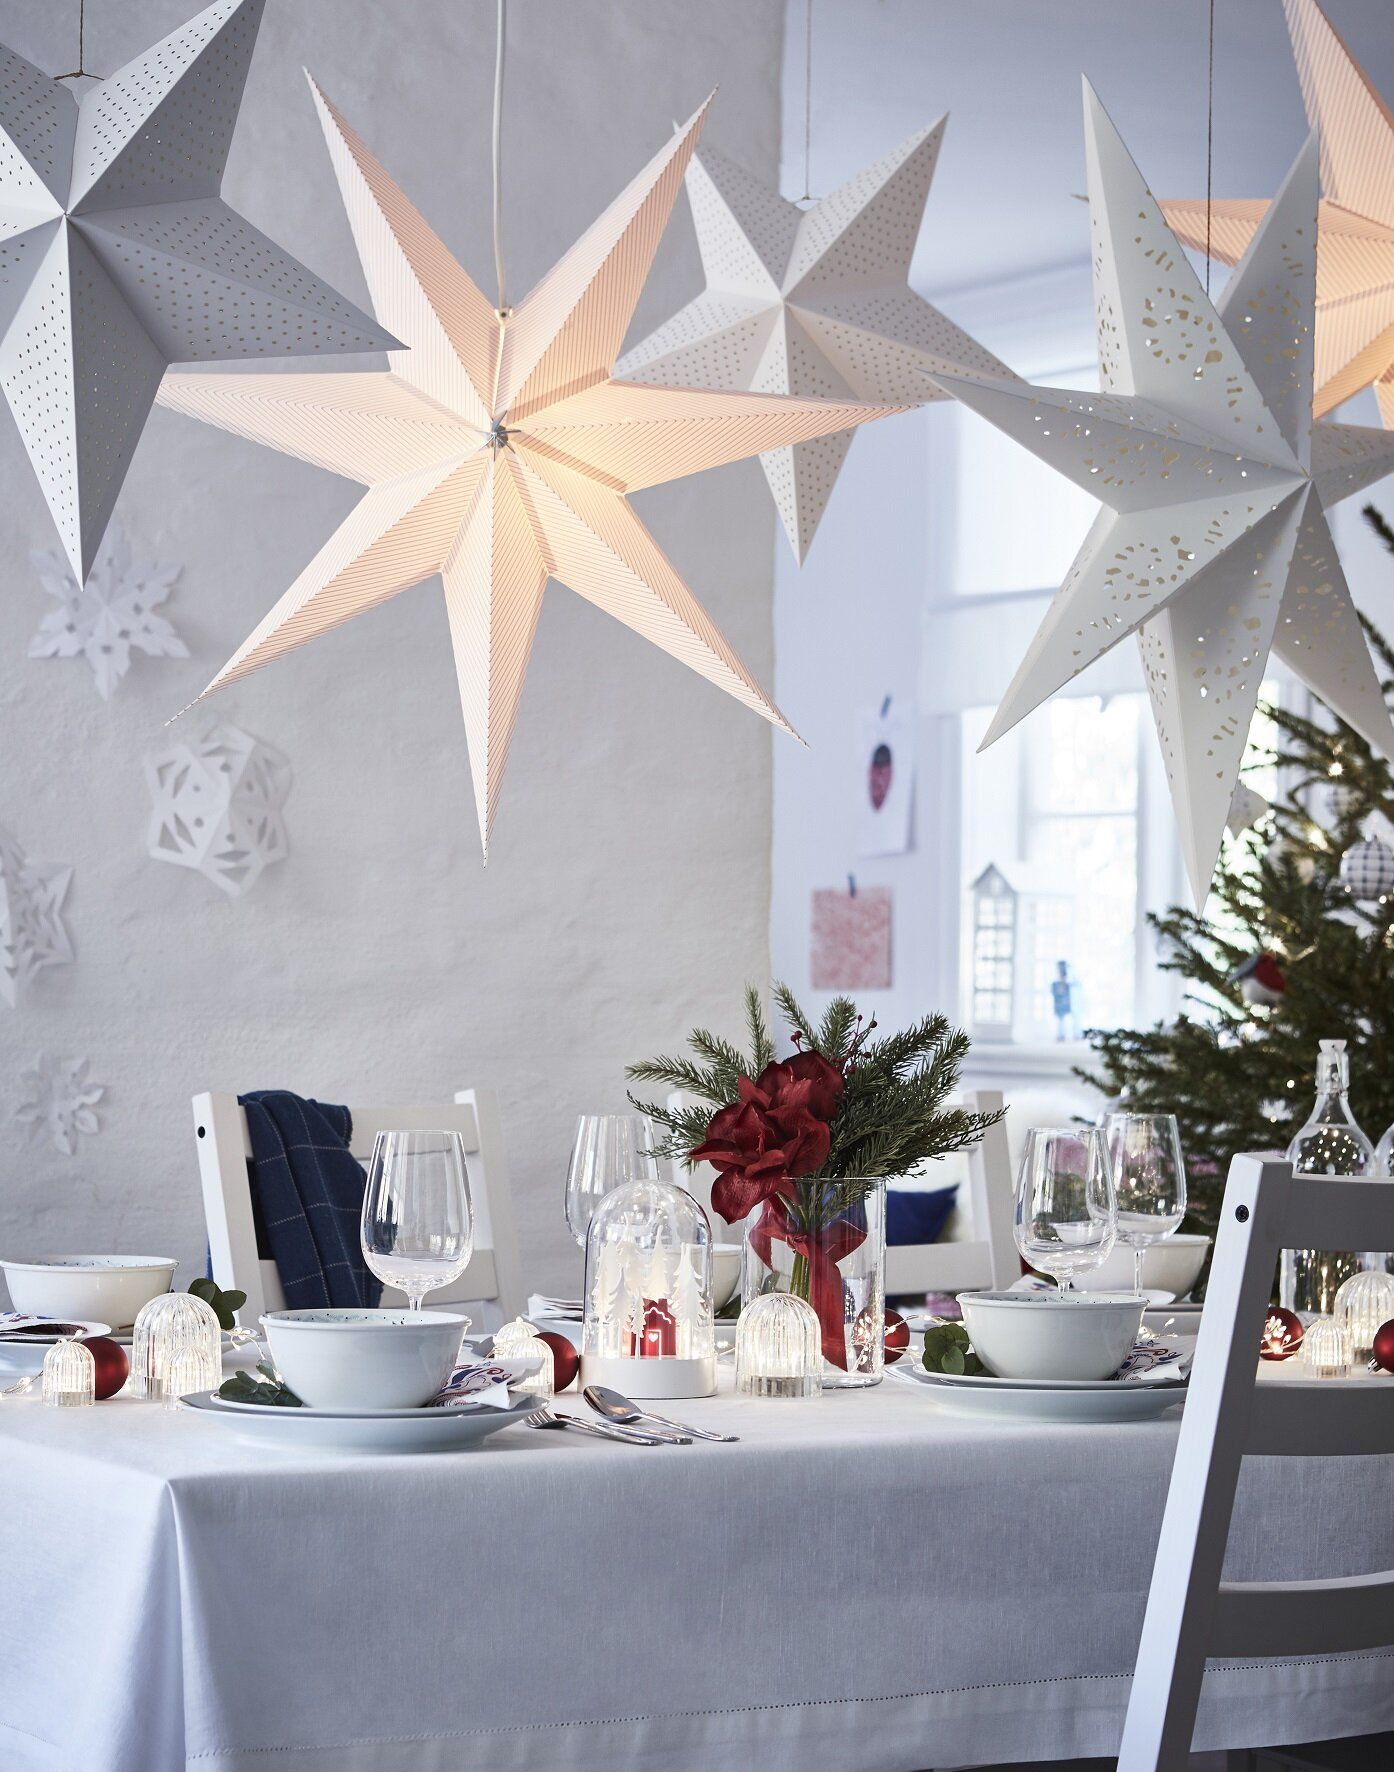 IKEA Christmas Collection 2019 + An Extra Winter Collection — THE NORDROOM